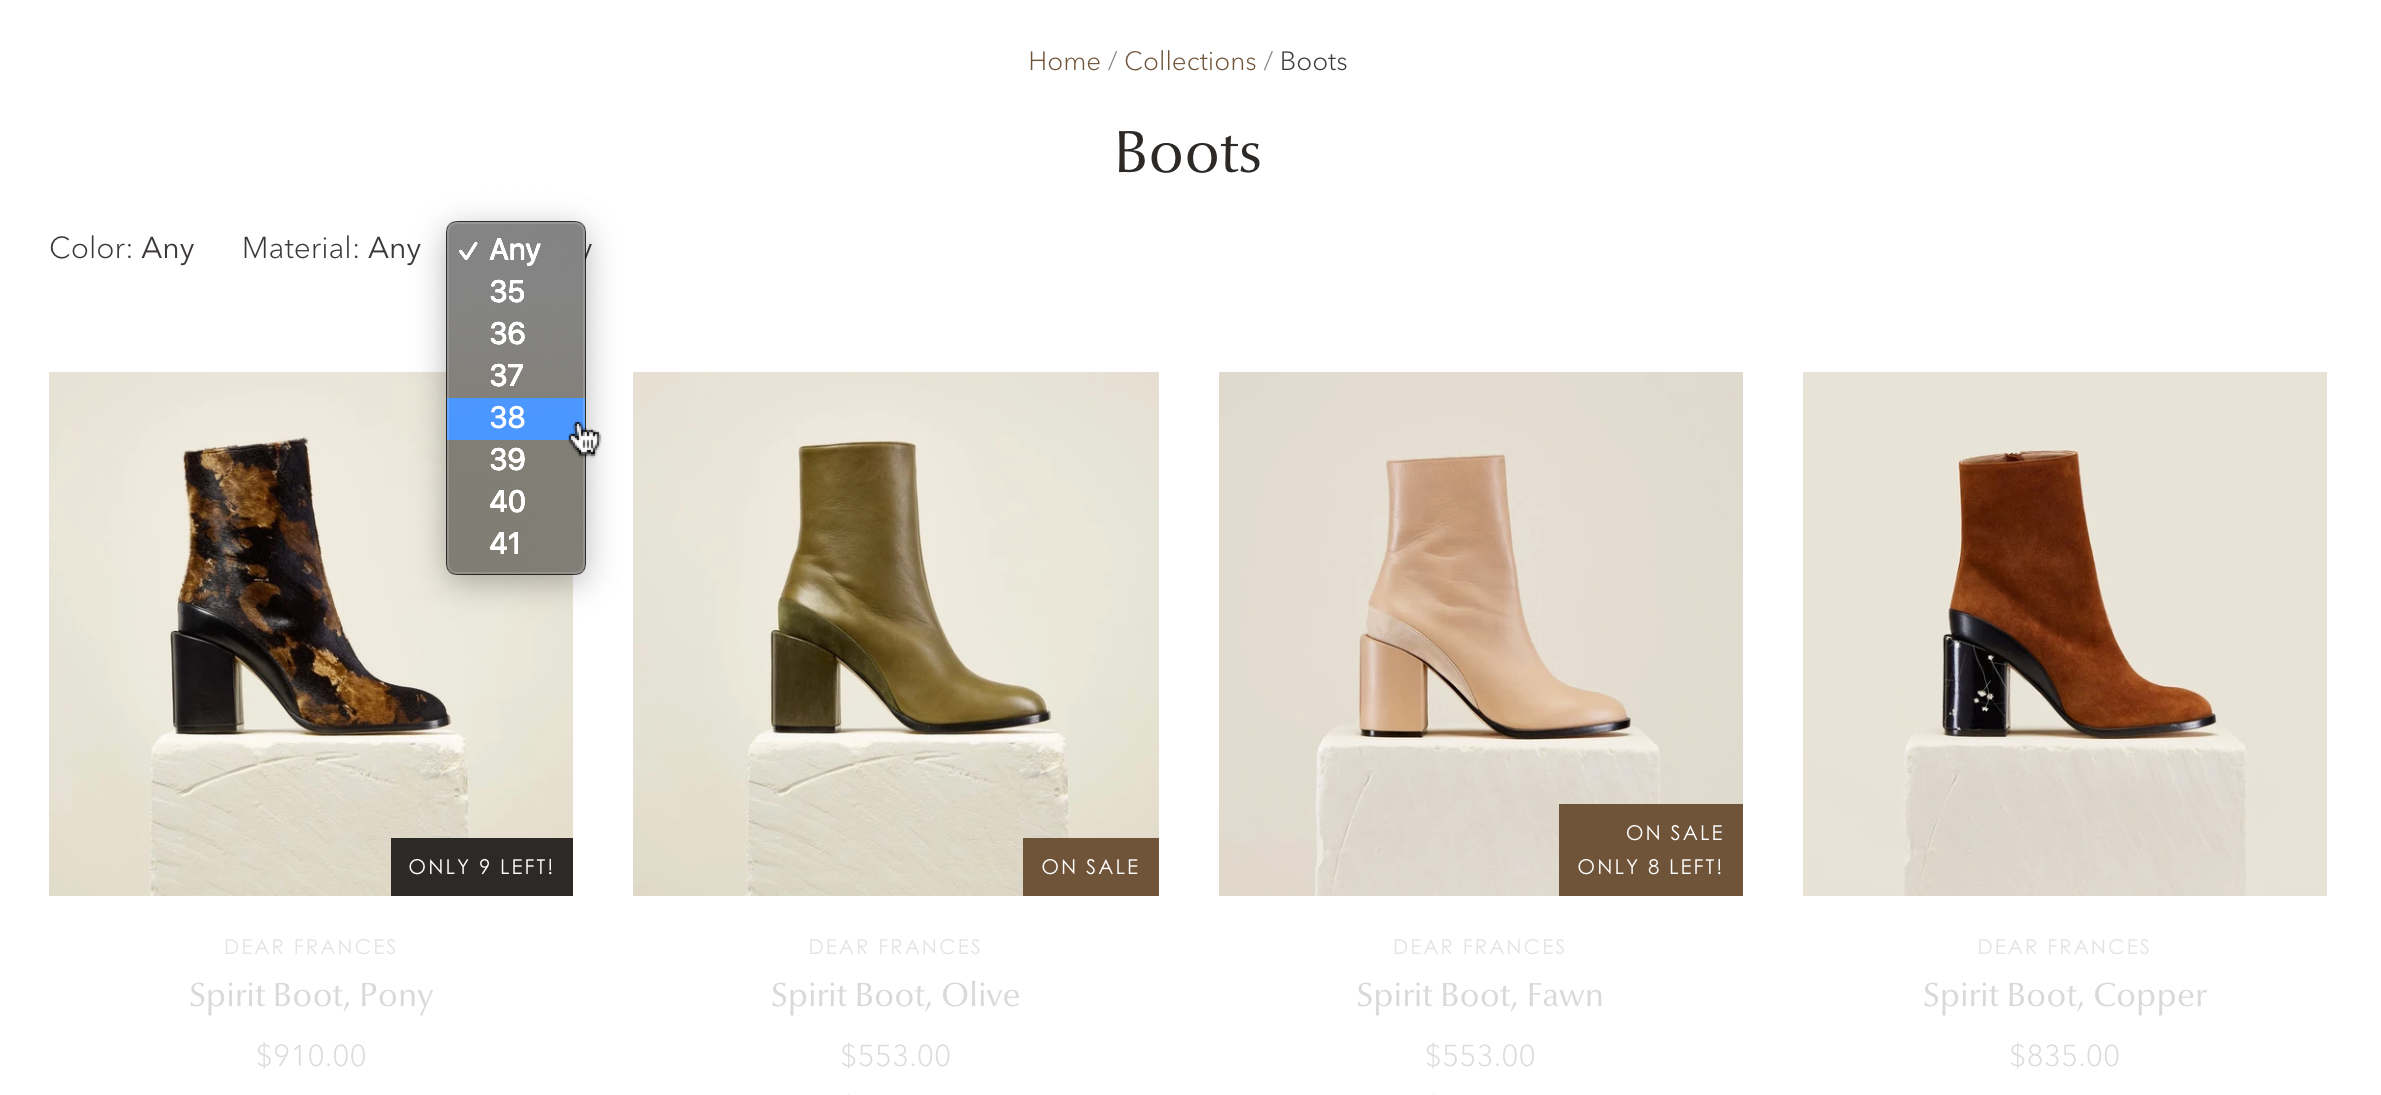 Selecting_a_size_filter_for_boots_collection.png